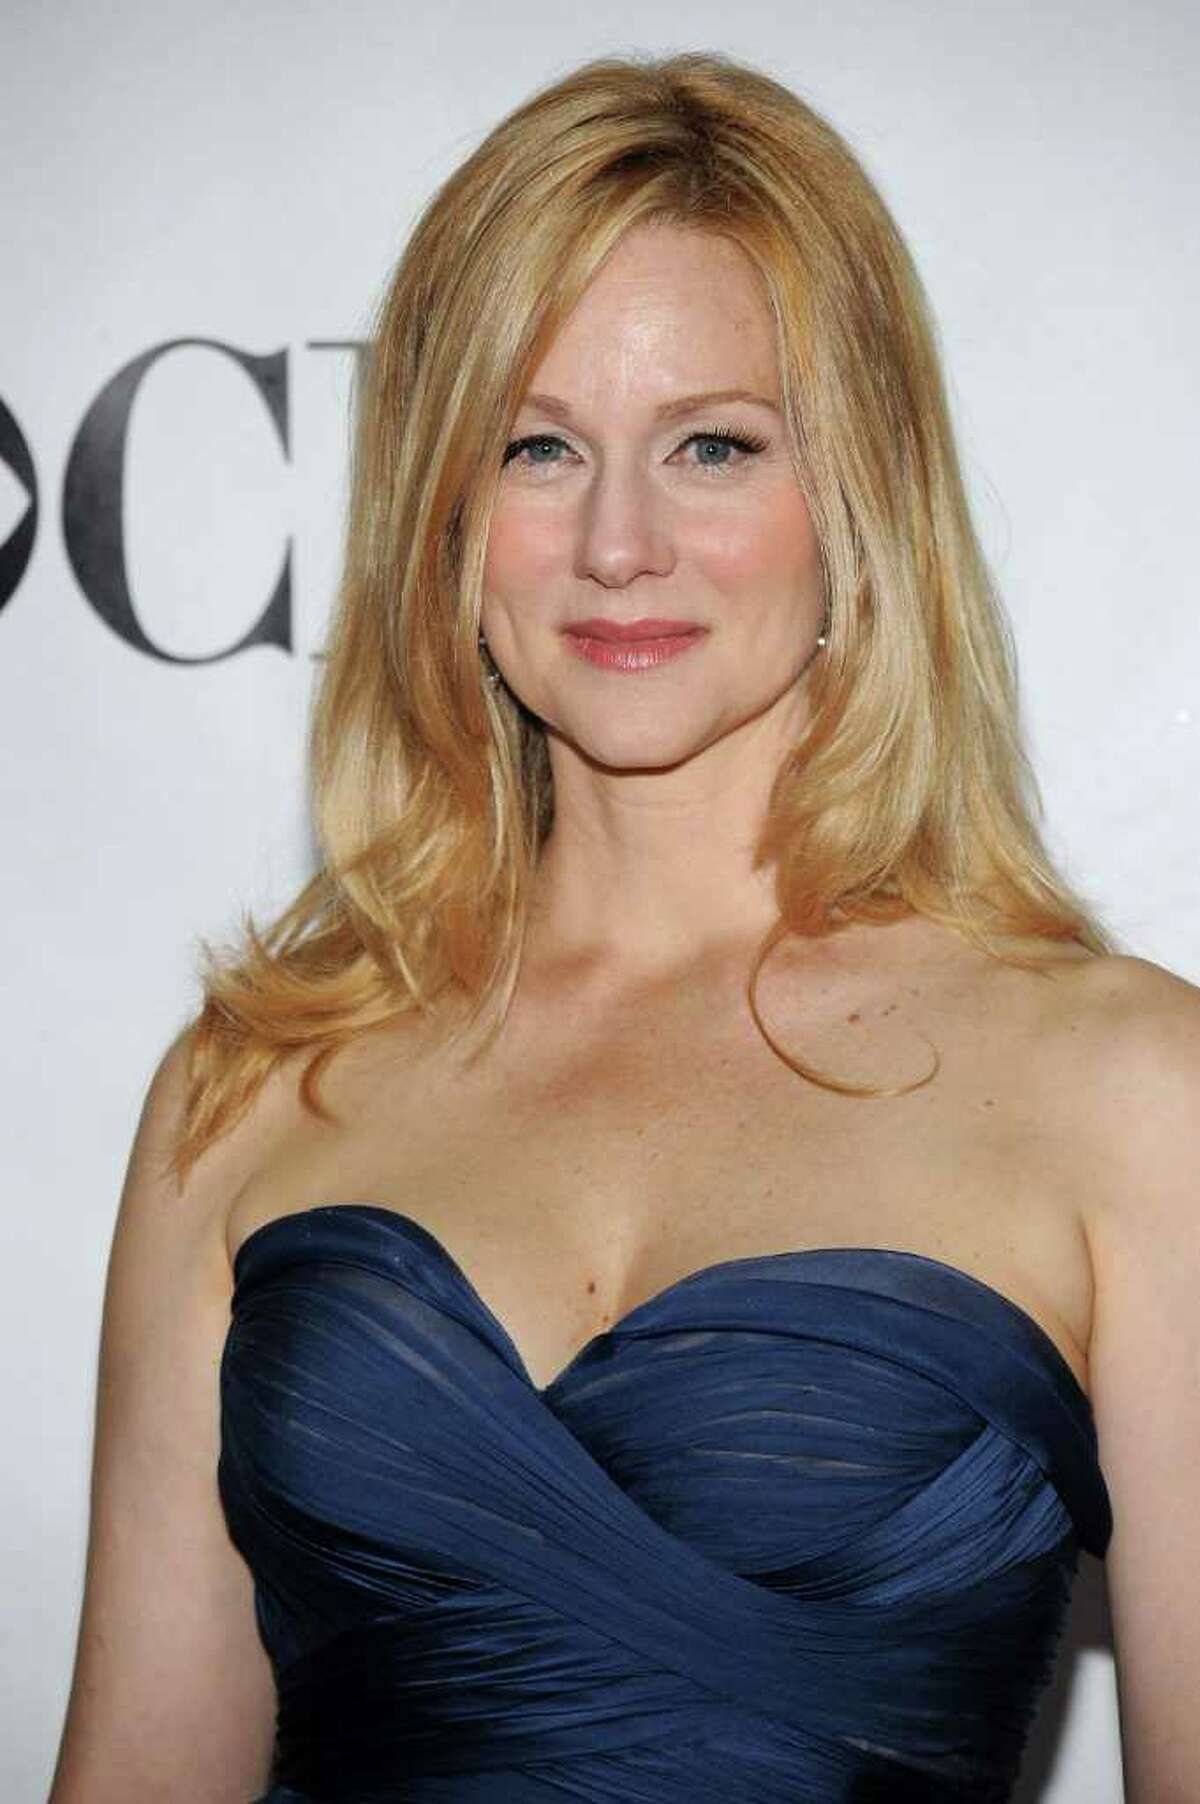 NEW YORK - JUNE 13: Actress Laura Linney attends the 64th Annual Tony Awards at Radio City Music Hall on June 13, 2010 in New York City. (Photo by Bryan Bedder/Getty Images)